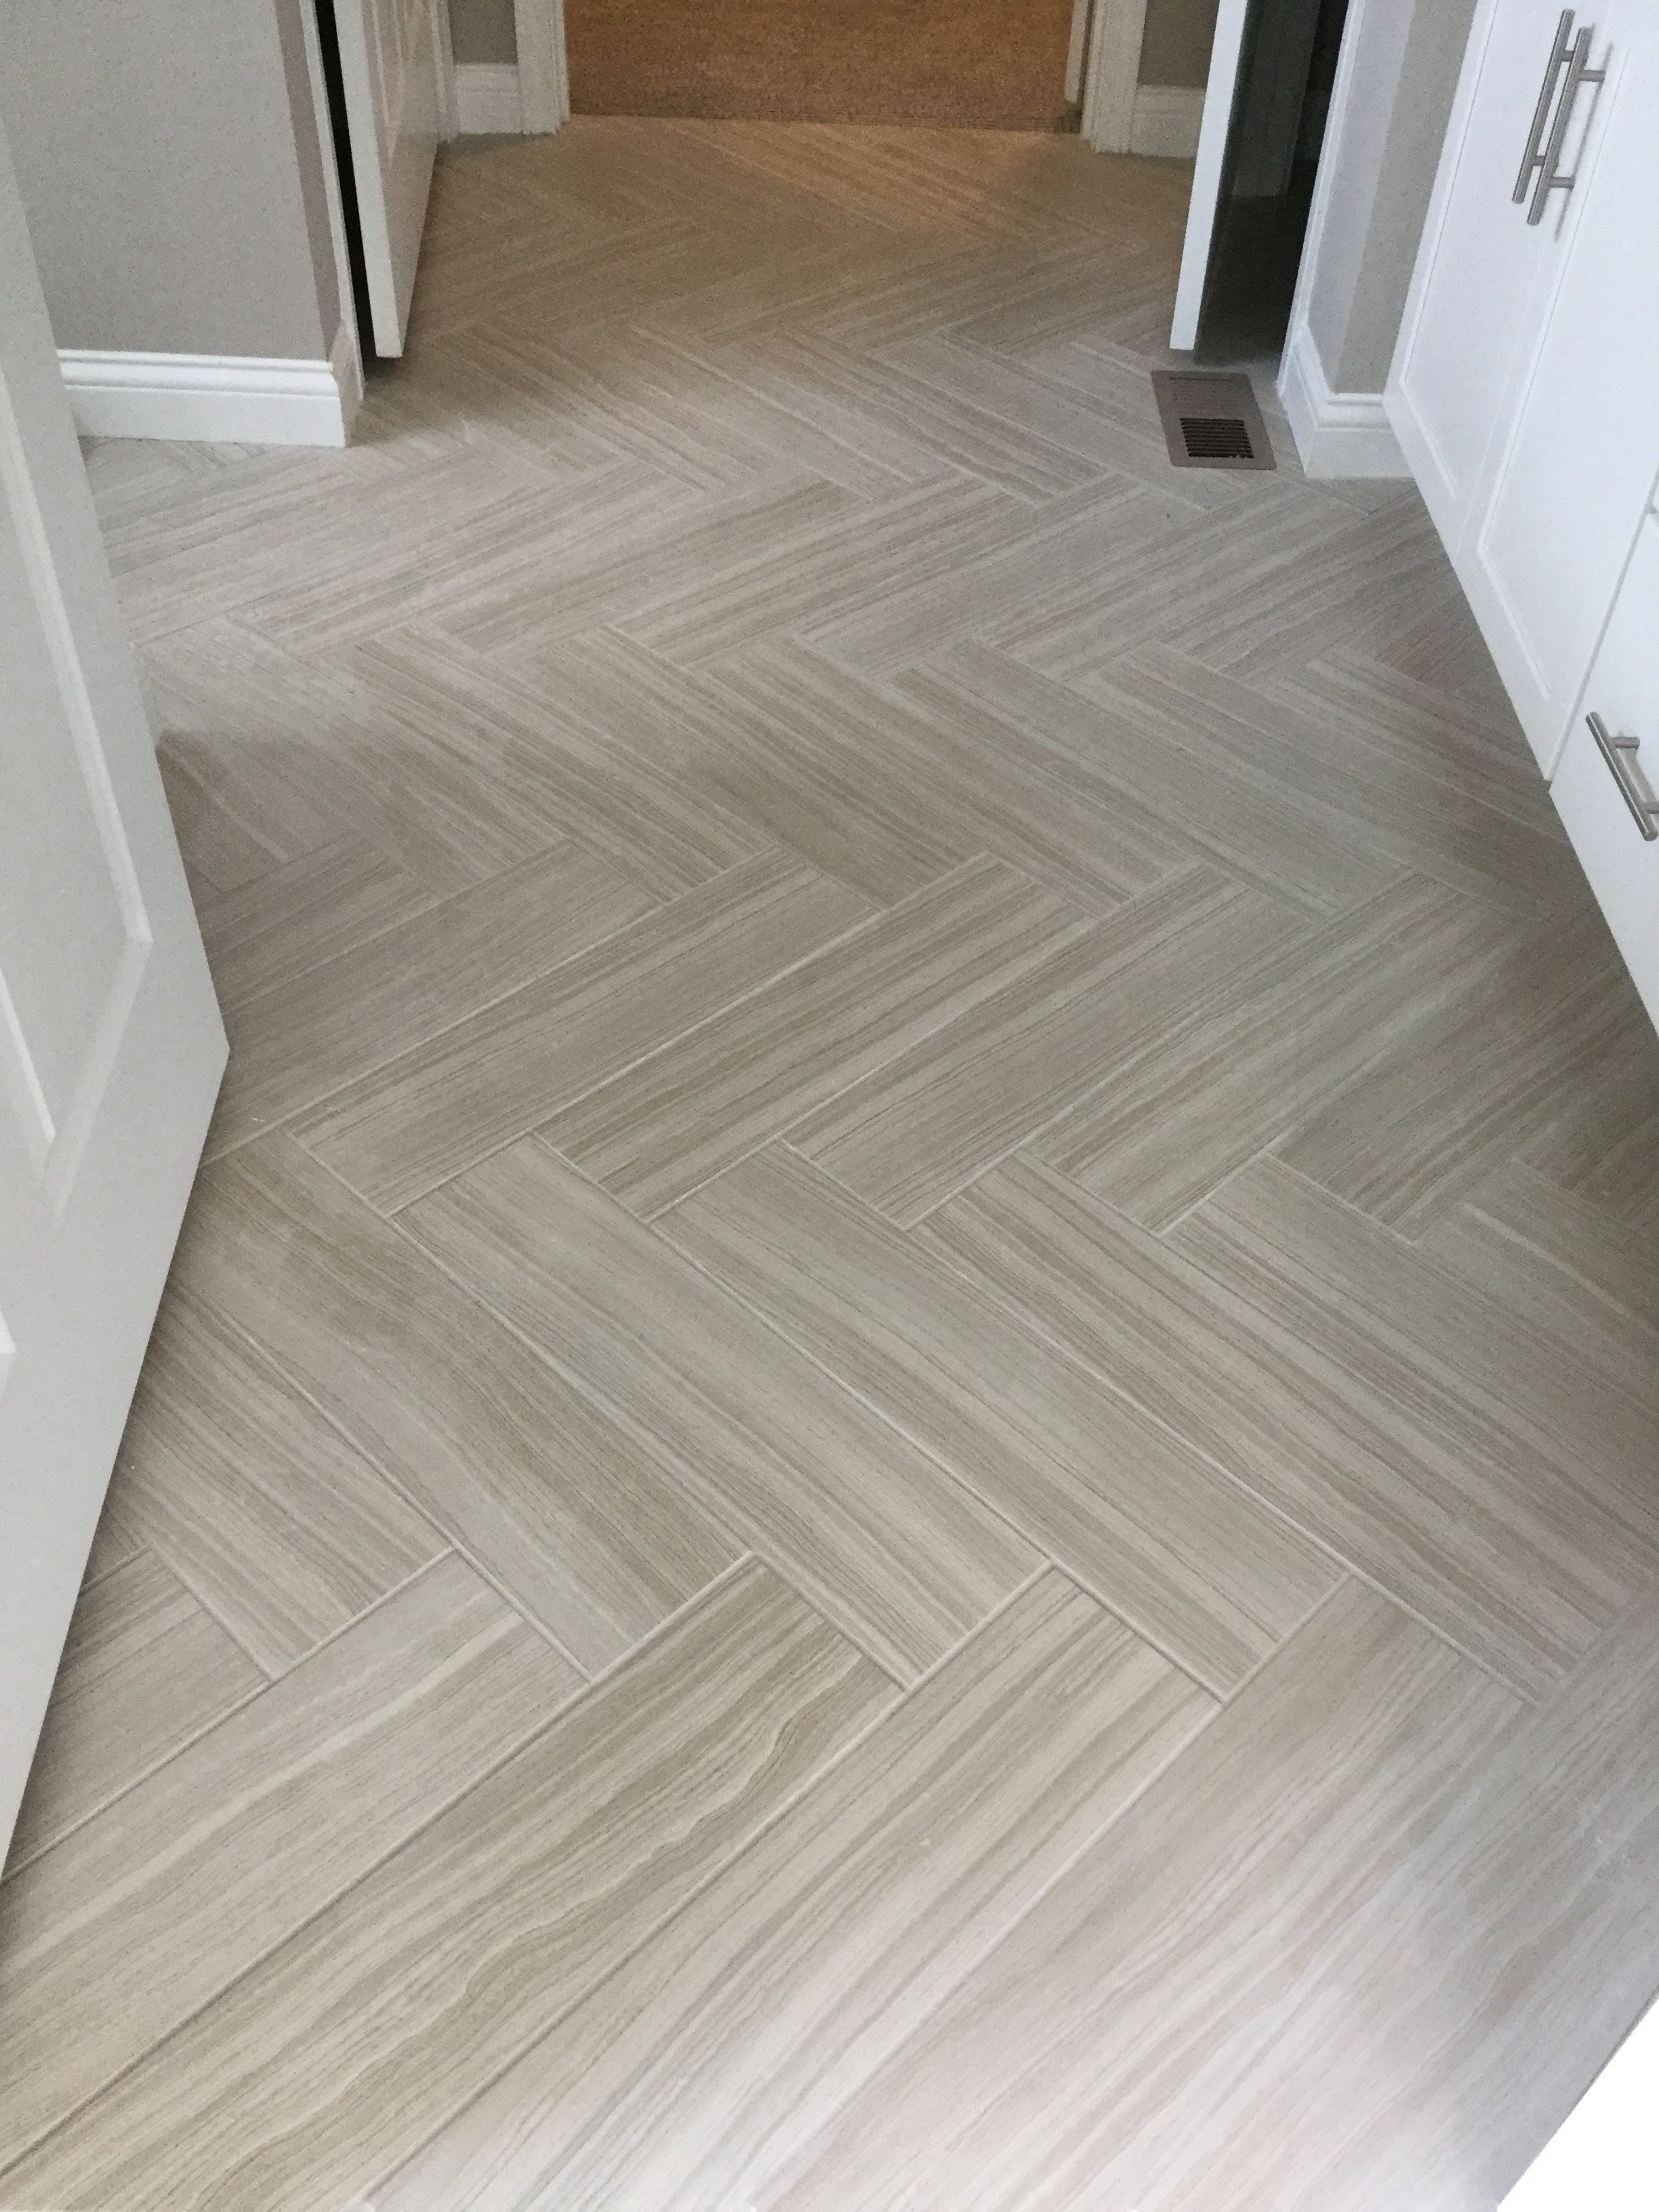 herringbone bathroom floor santino bianco 6x24 tiles in herringbone pattern on floor 13106